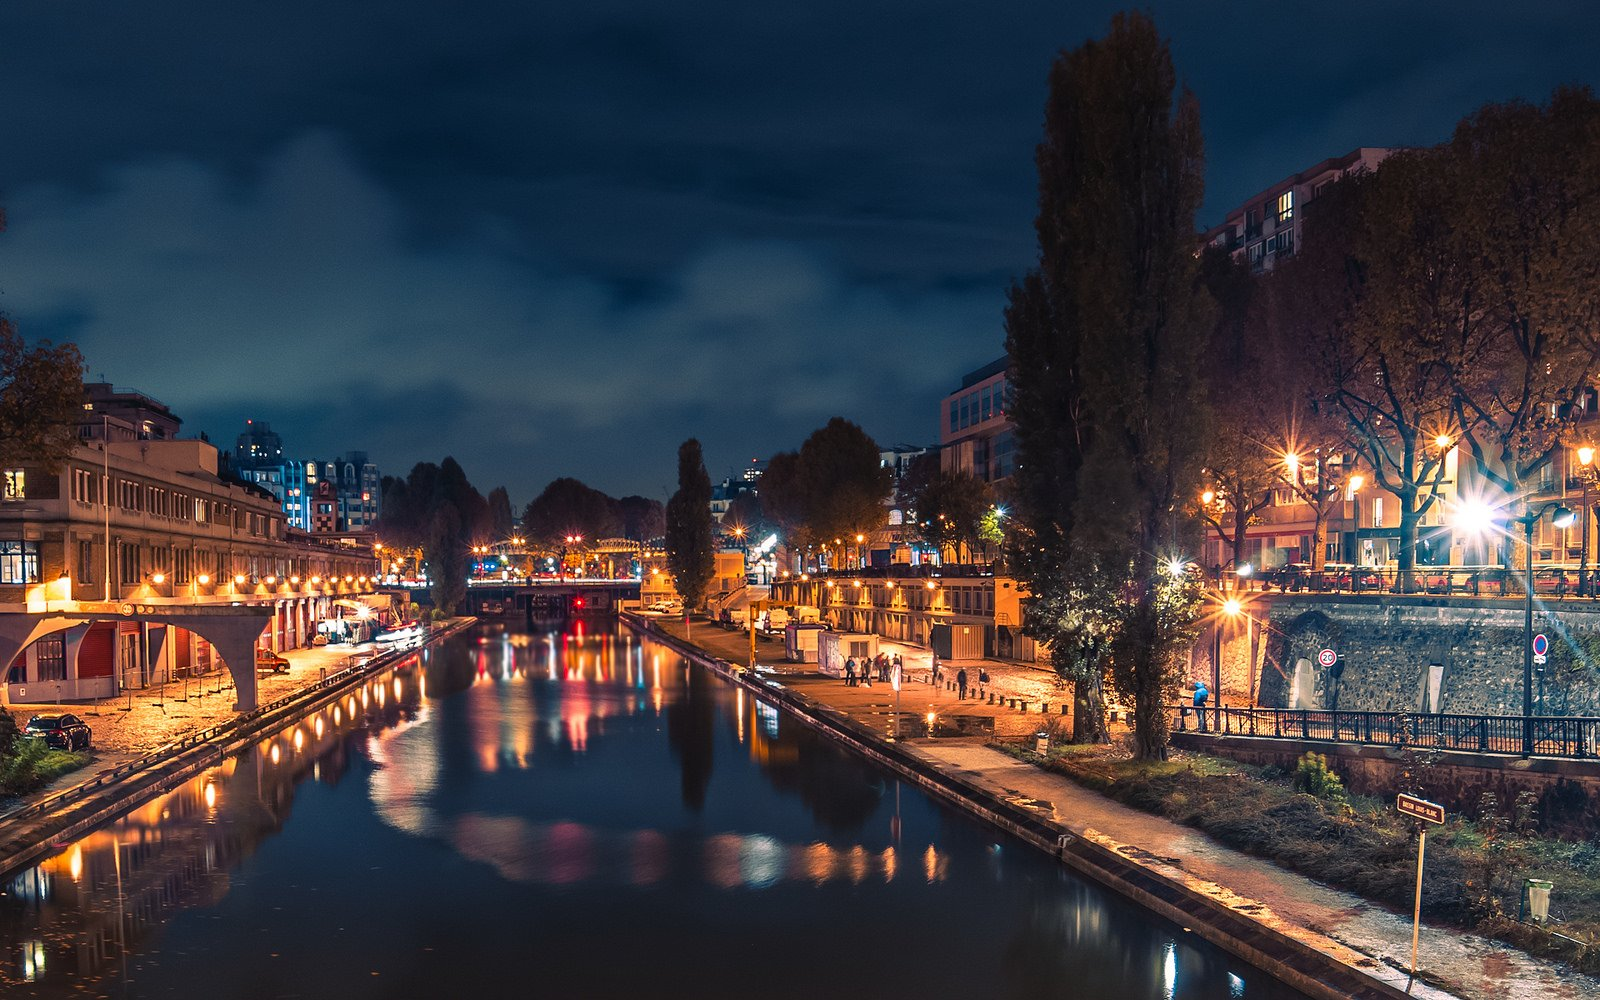 How to take a walk along the canal Saint-Martin in Paris